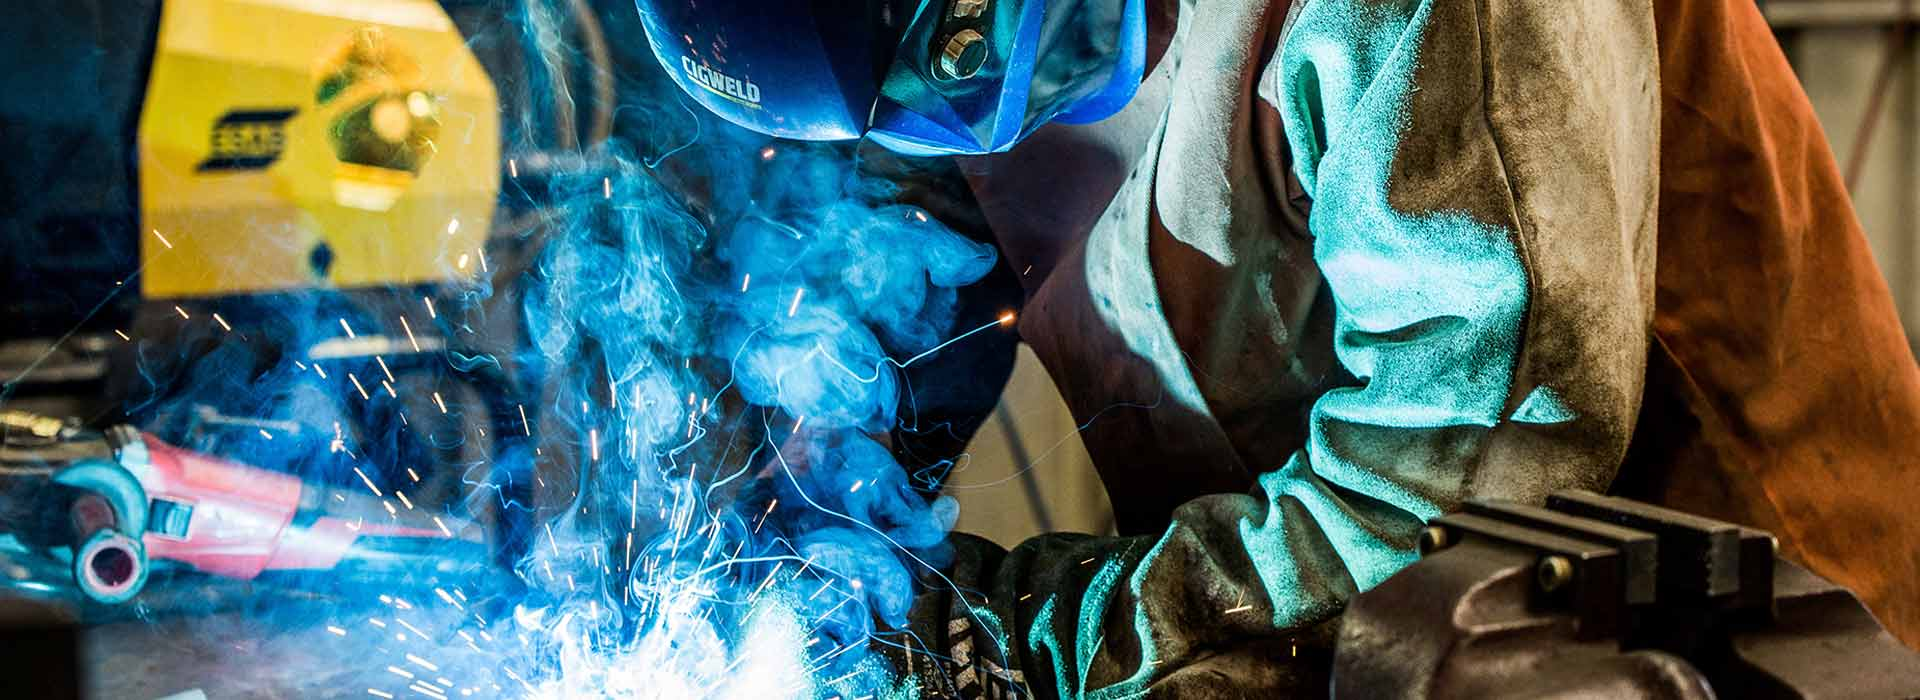 Person doing welding work, illuminated by sparks and smoke, wearing protective face shield, leather jacket and gloves